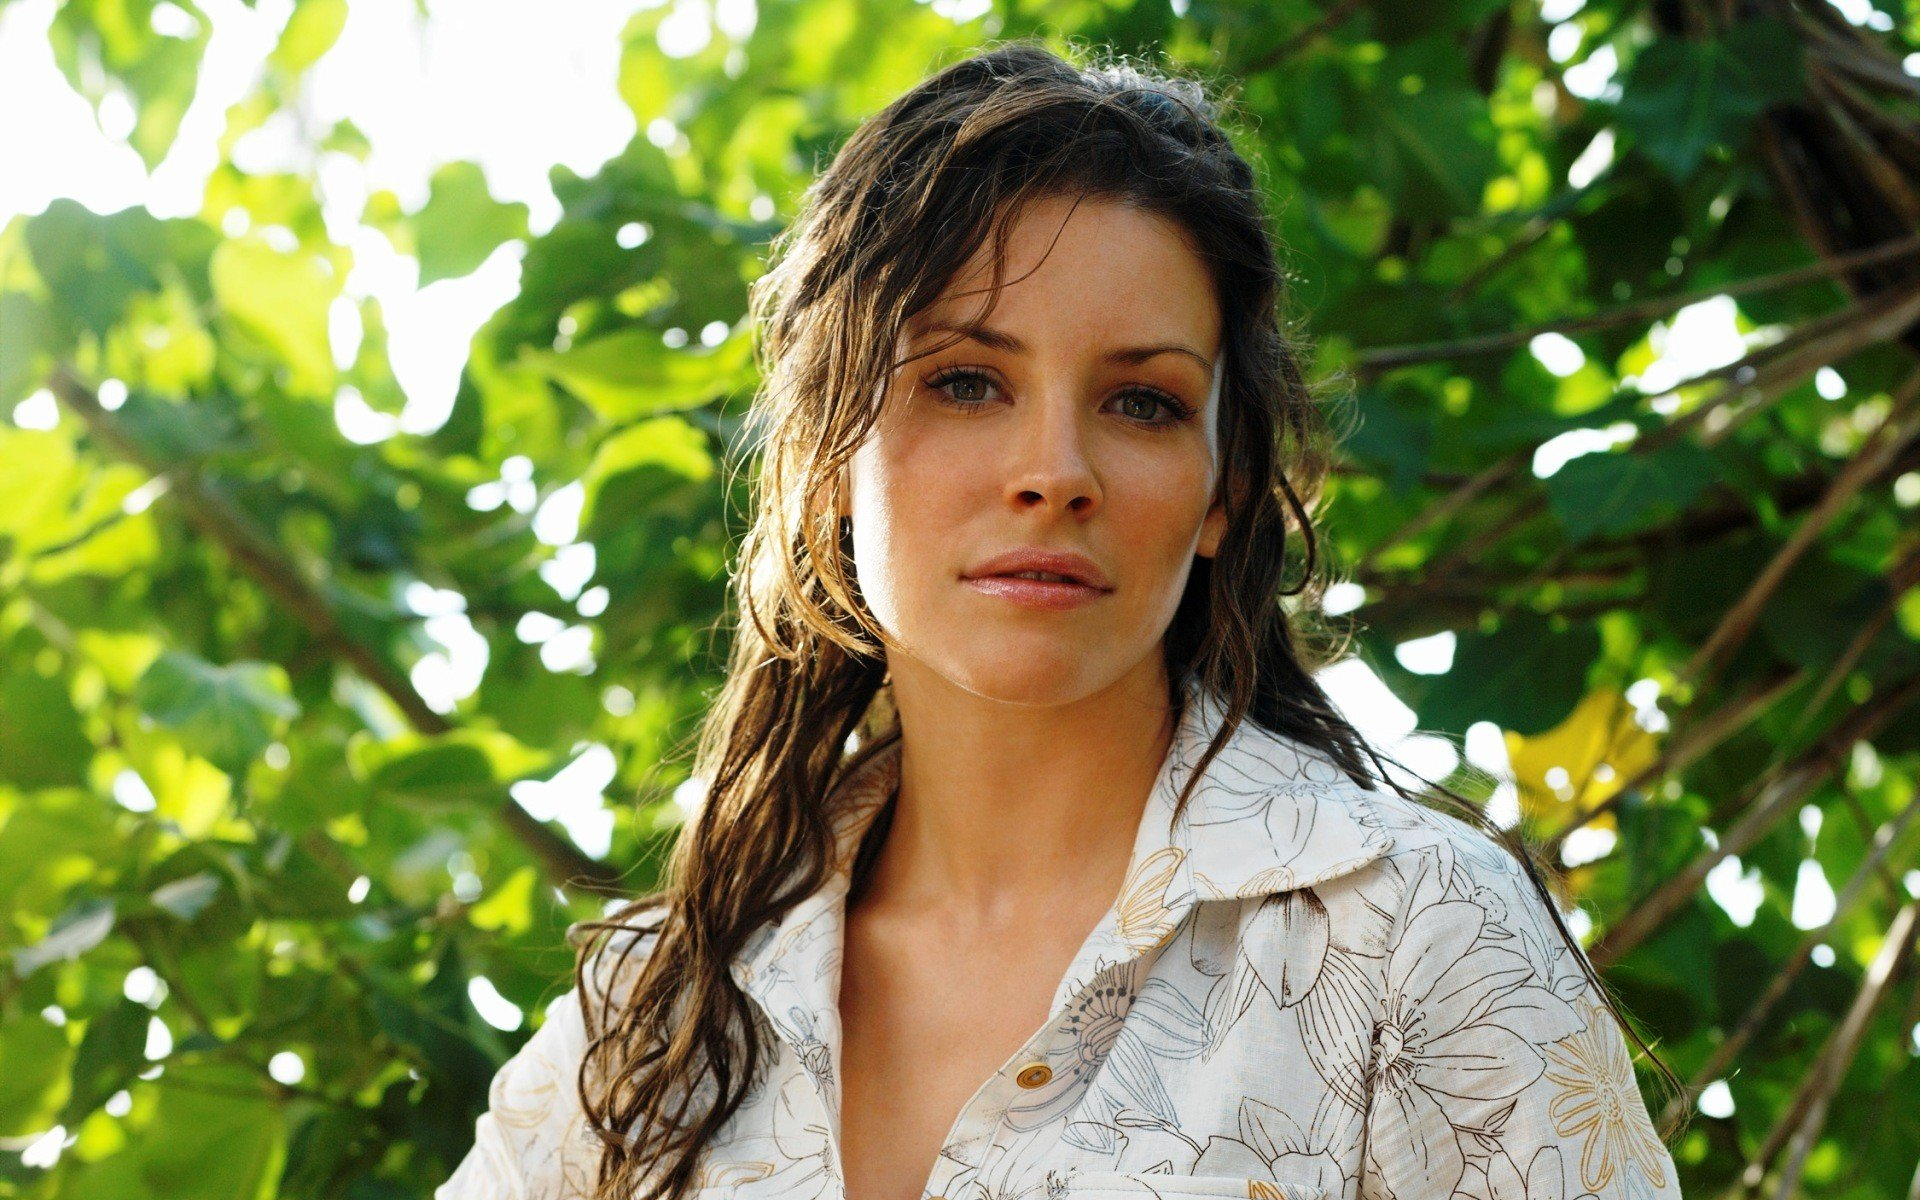 evangeline lilly wallpaper 55295